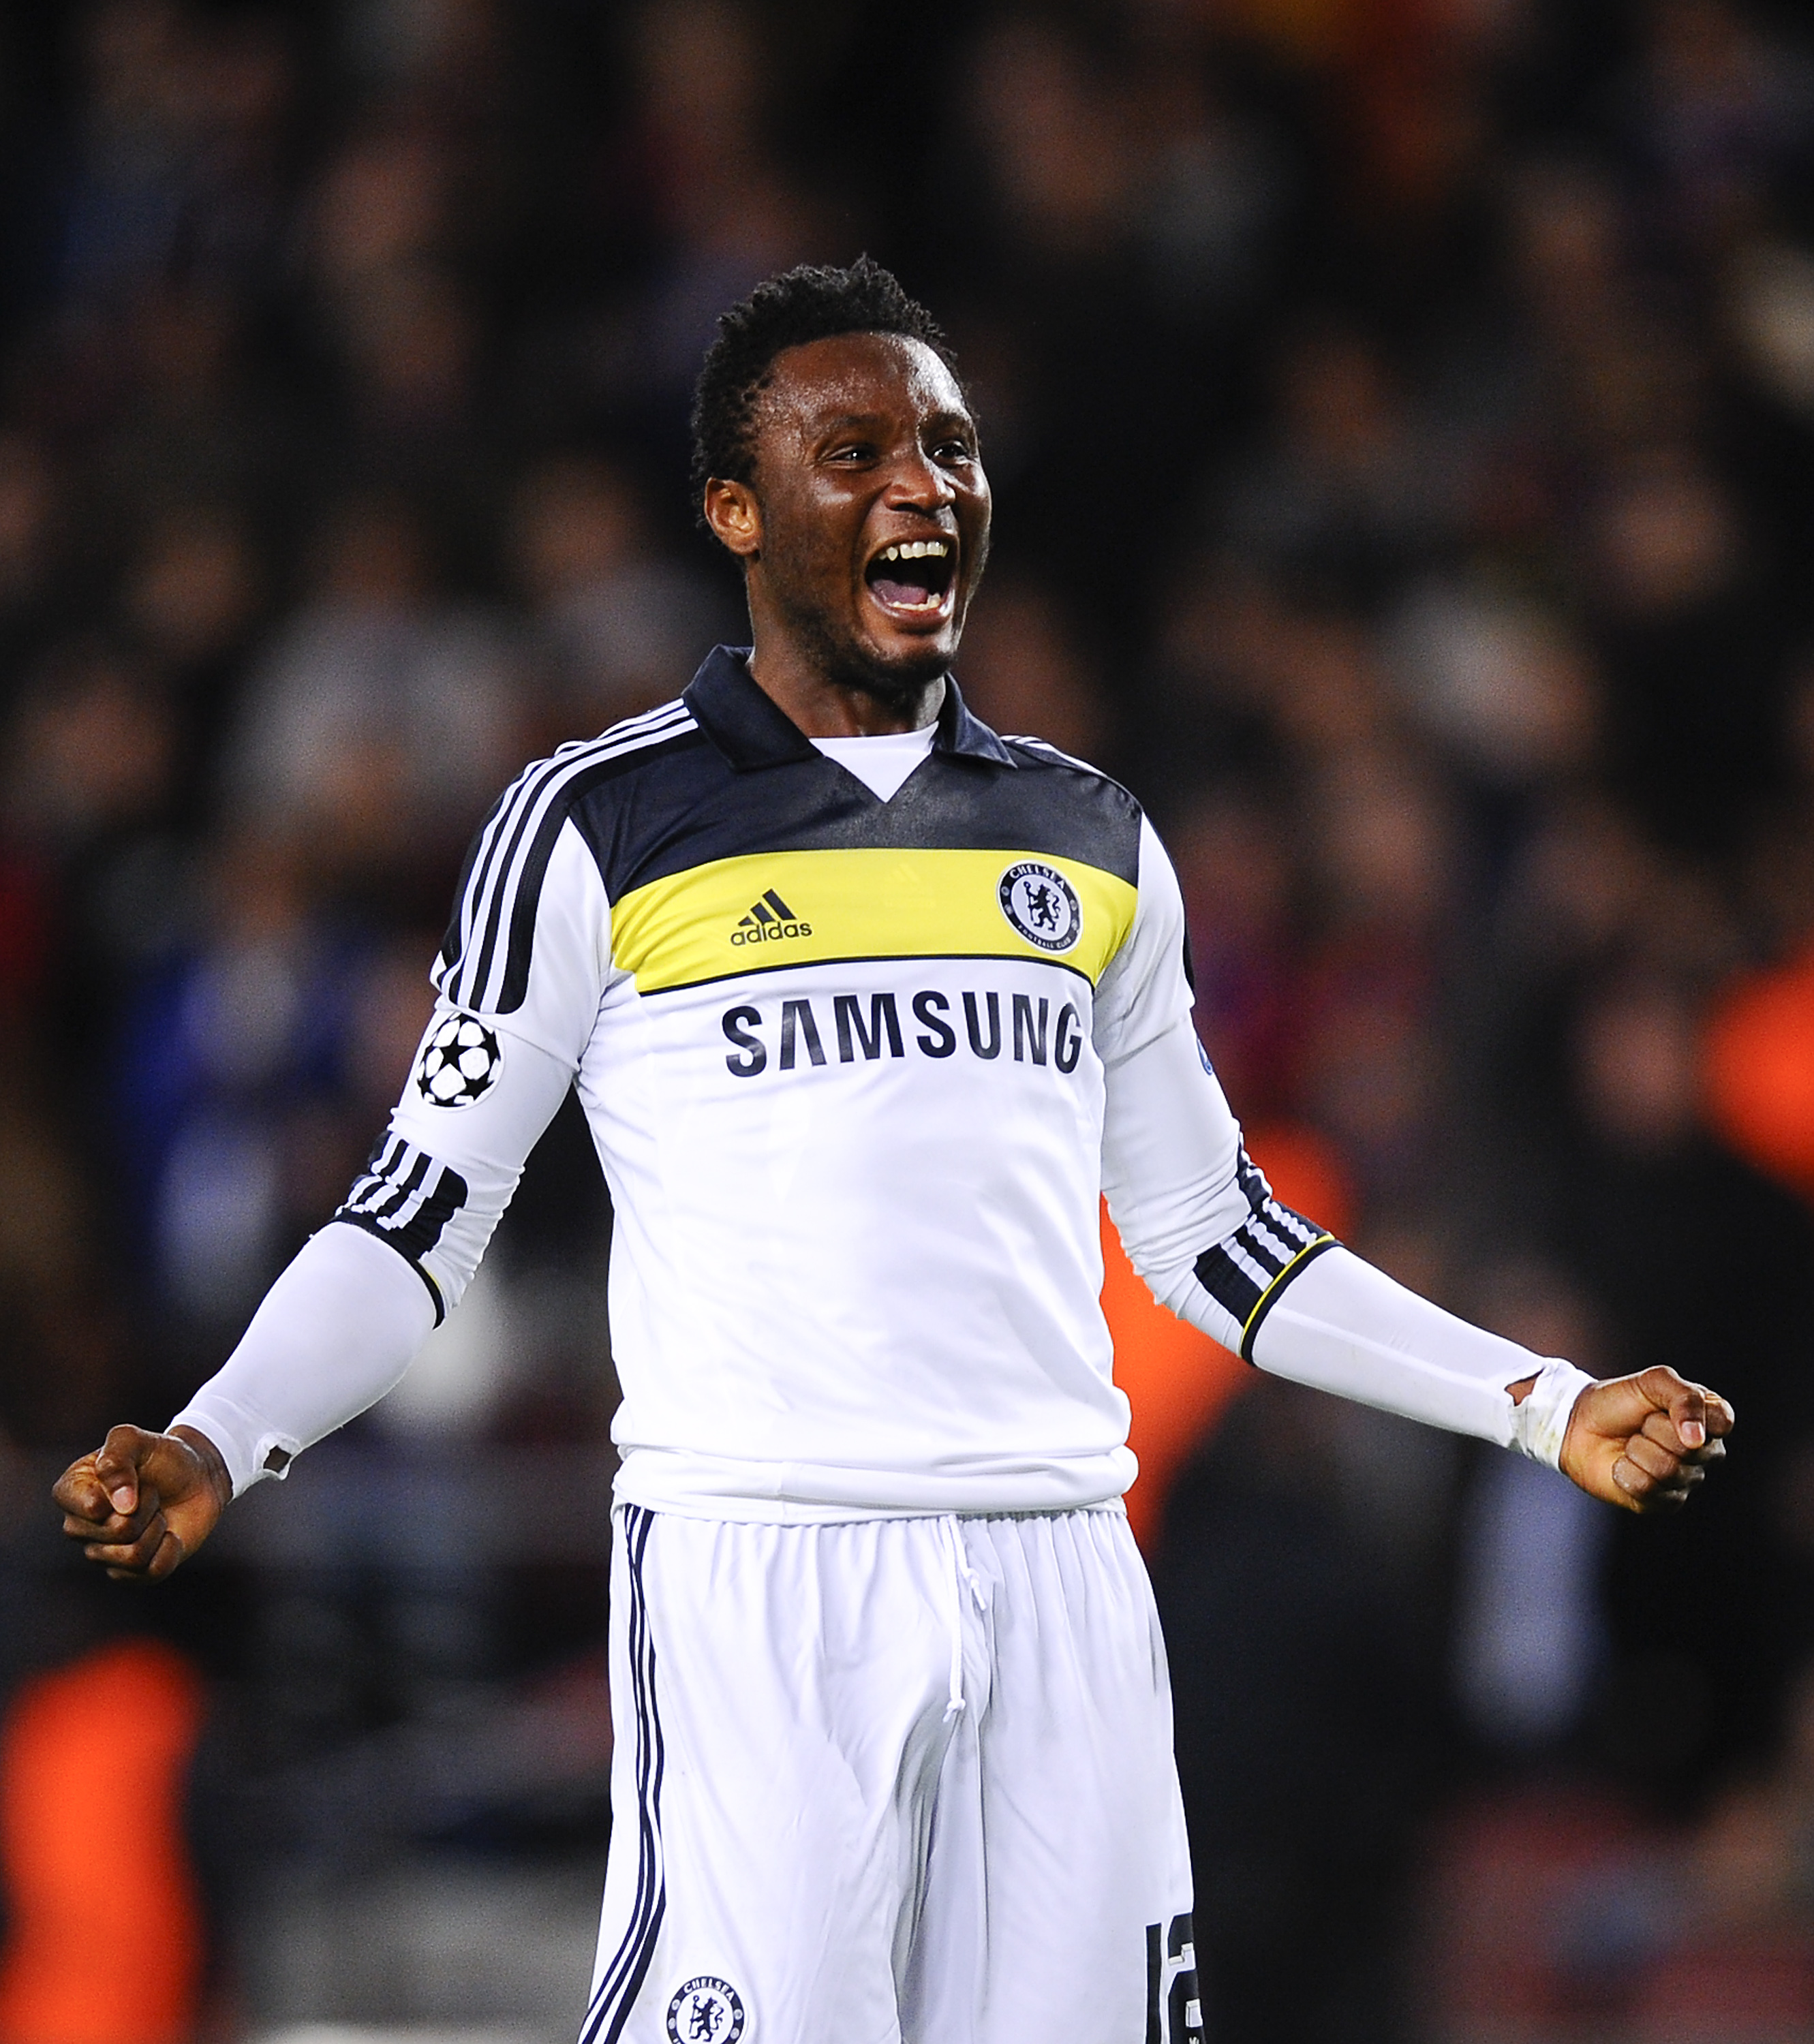 Chelsea legend Mikel returns to England by joining